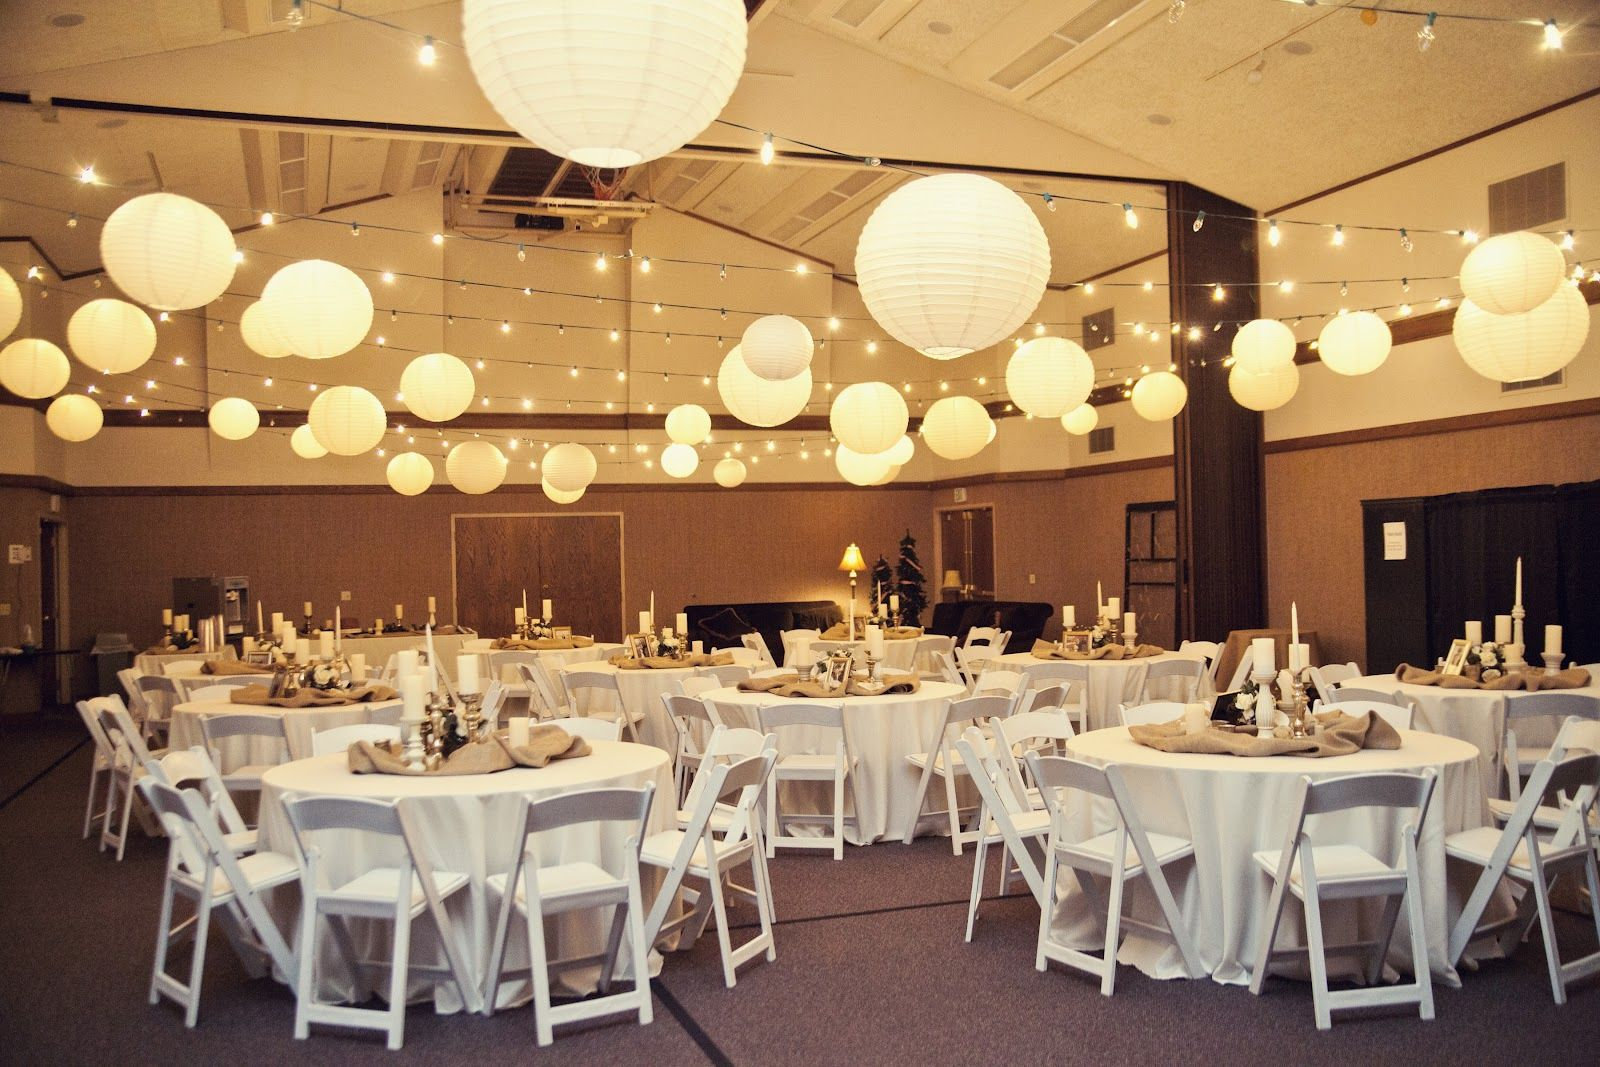 Wedding Reception Decorating Ideas On A Budget Best Paint For Interior Check More At Http